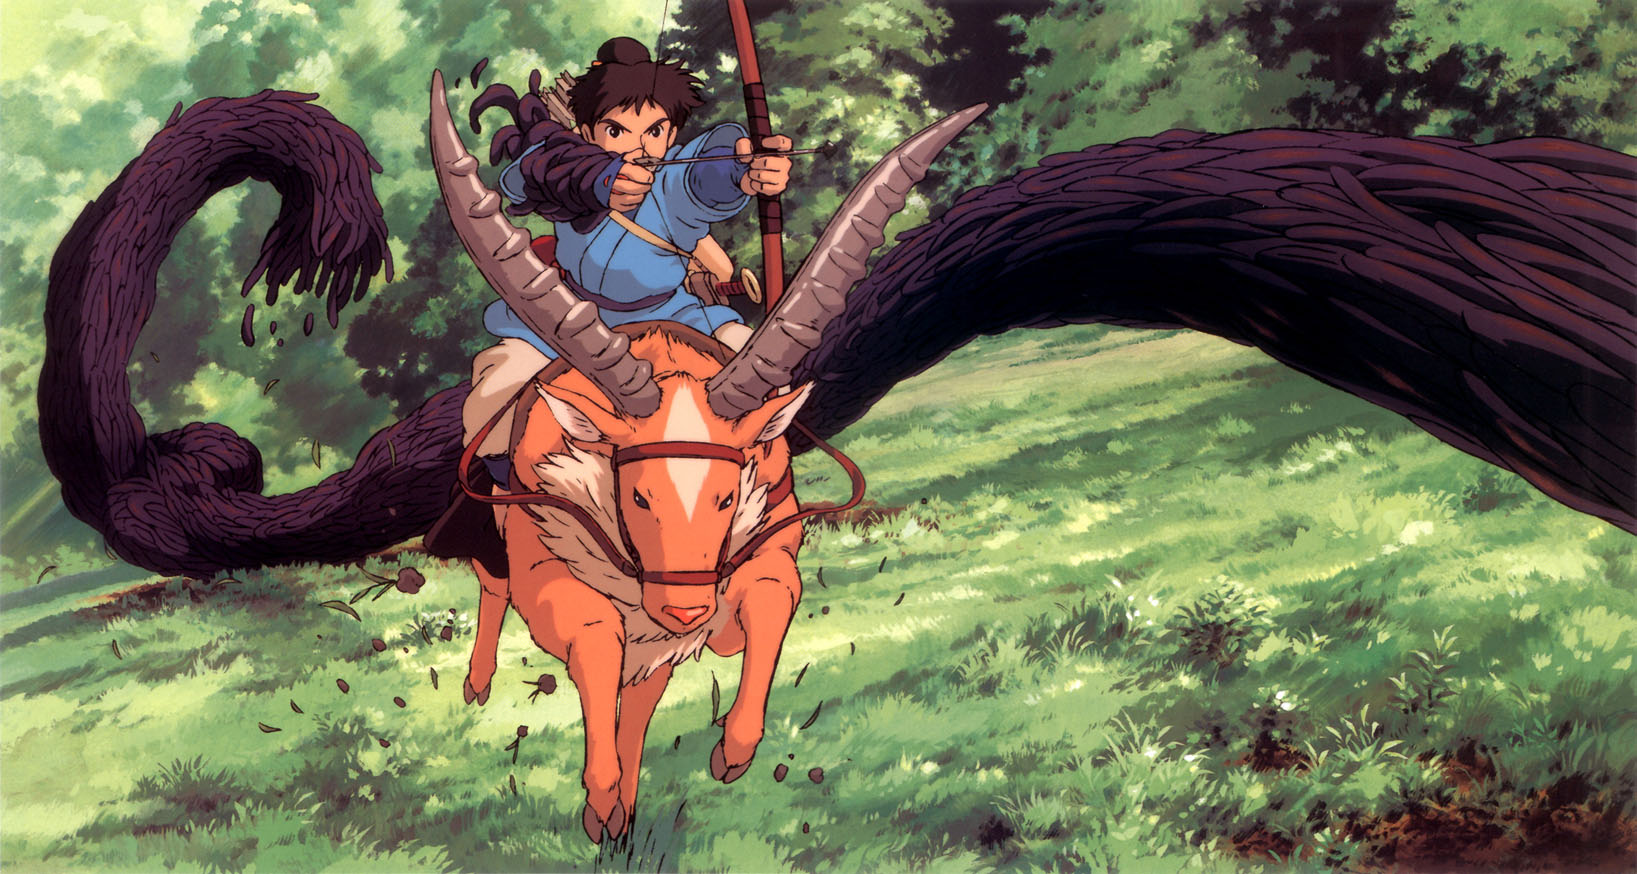 Blu Ray Review Princess Mononoke 1997 Dir Hayao Miyazaki You Won Cannes